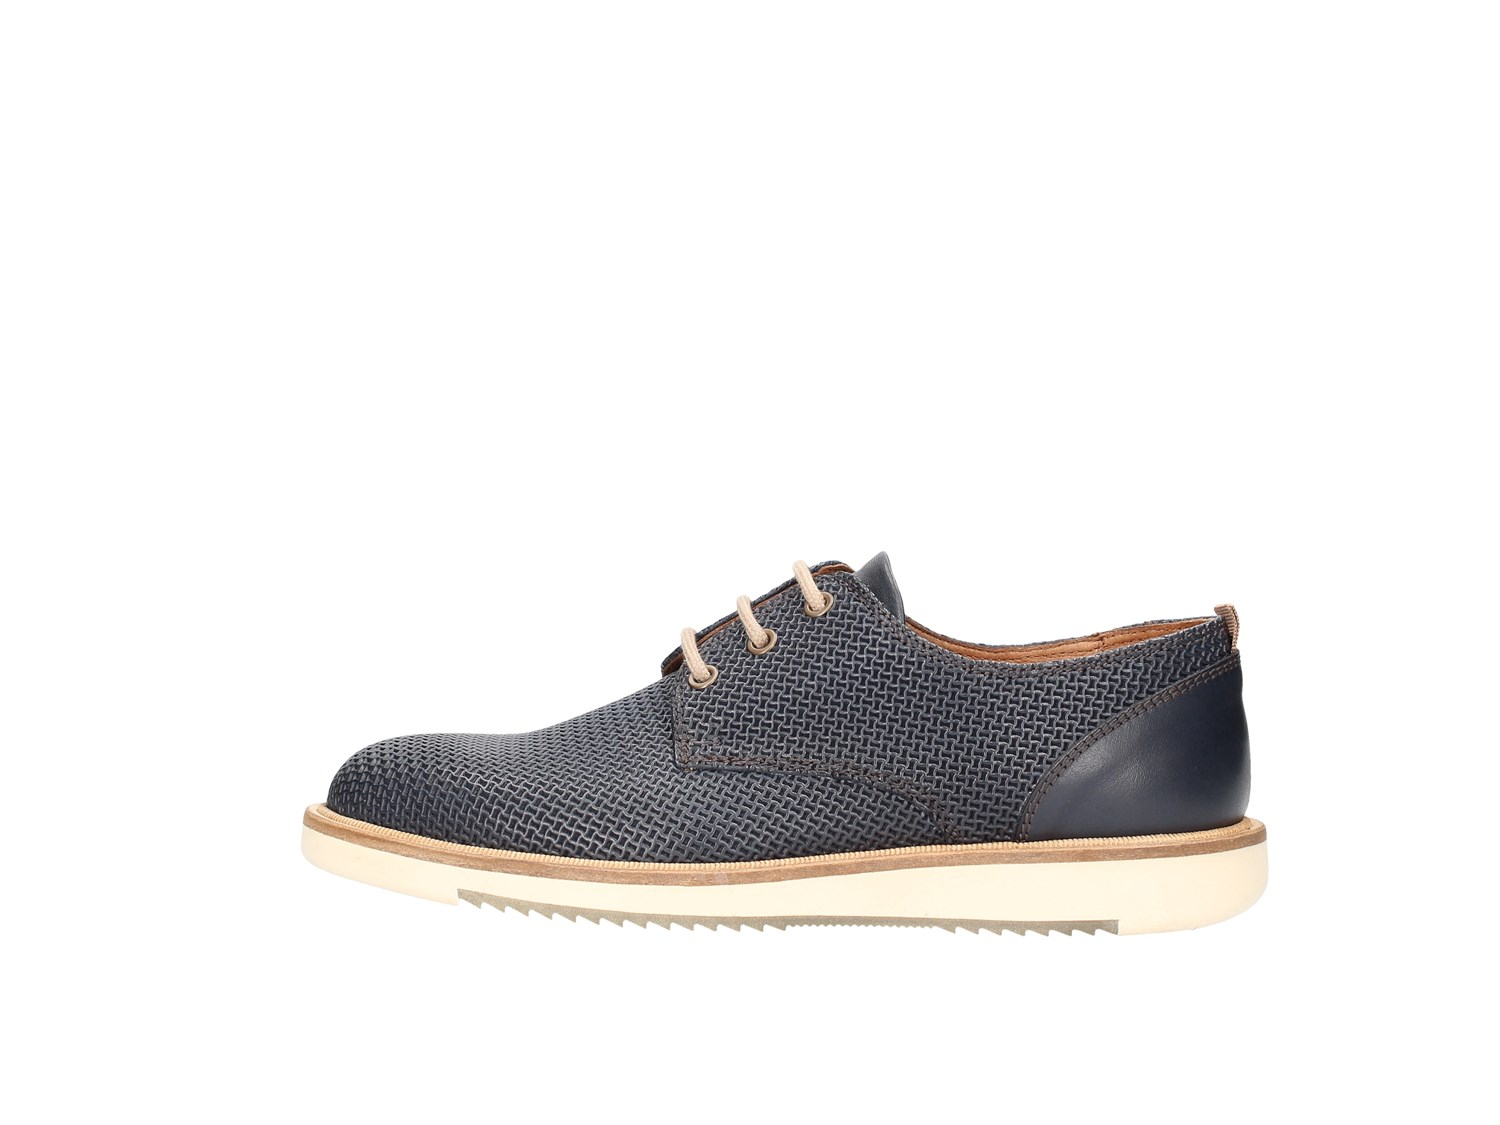 Marco Ferretti 111935mf Blue Shoes Man Francesina